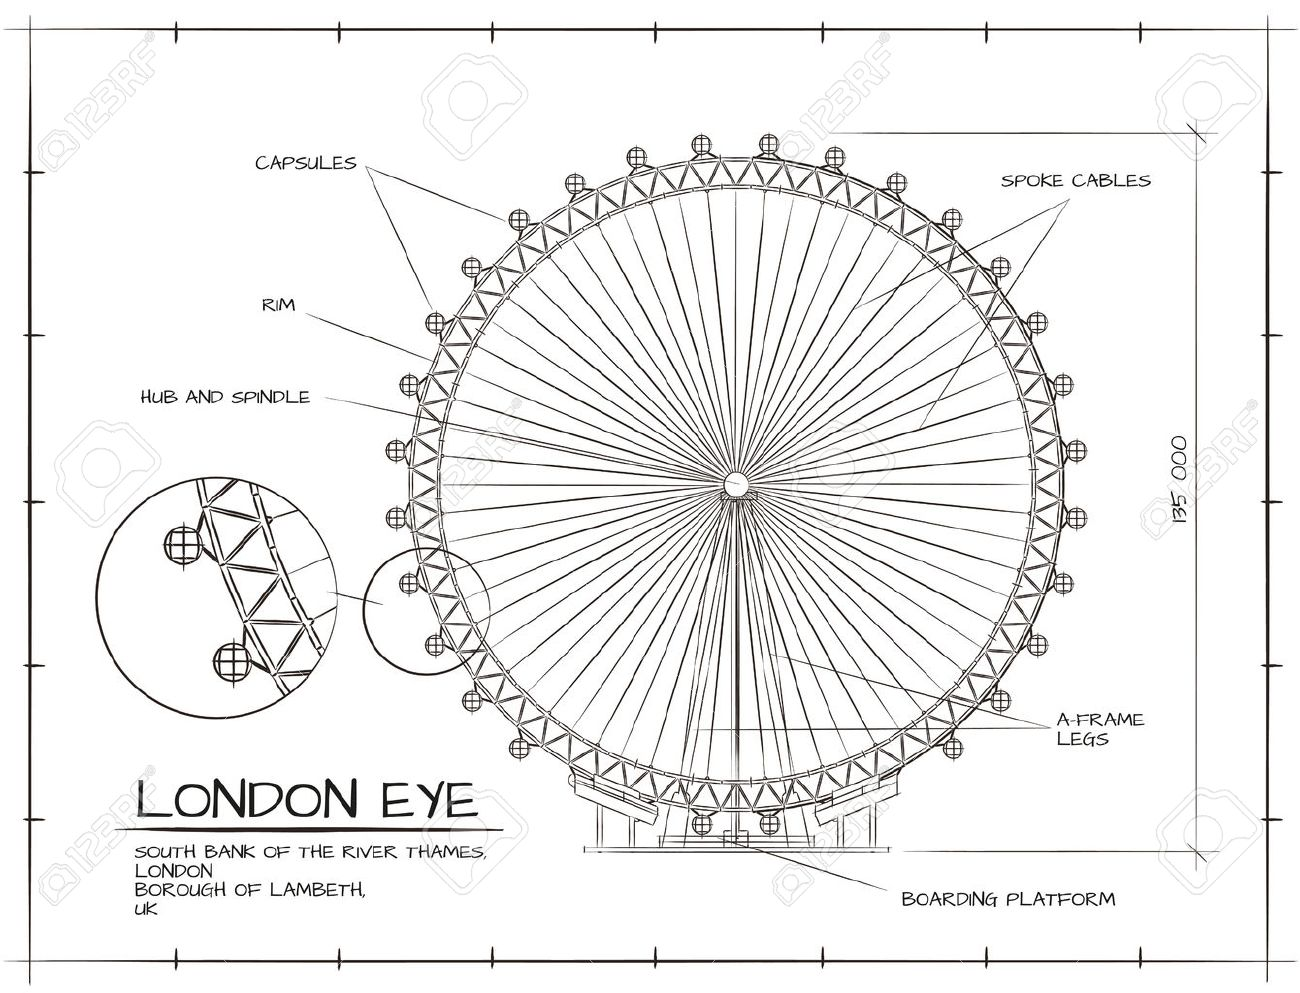 Architectural Technical Drawing of London Eye Millennium Wheel - 53103253